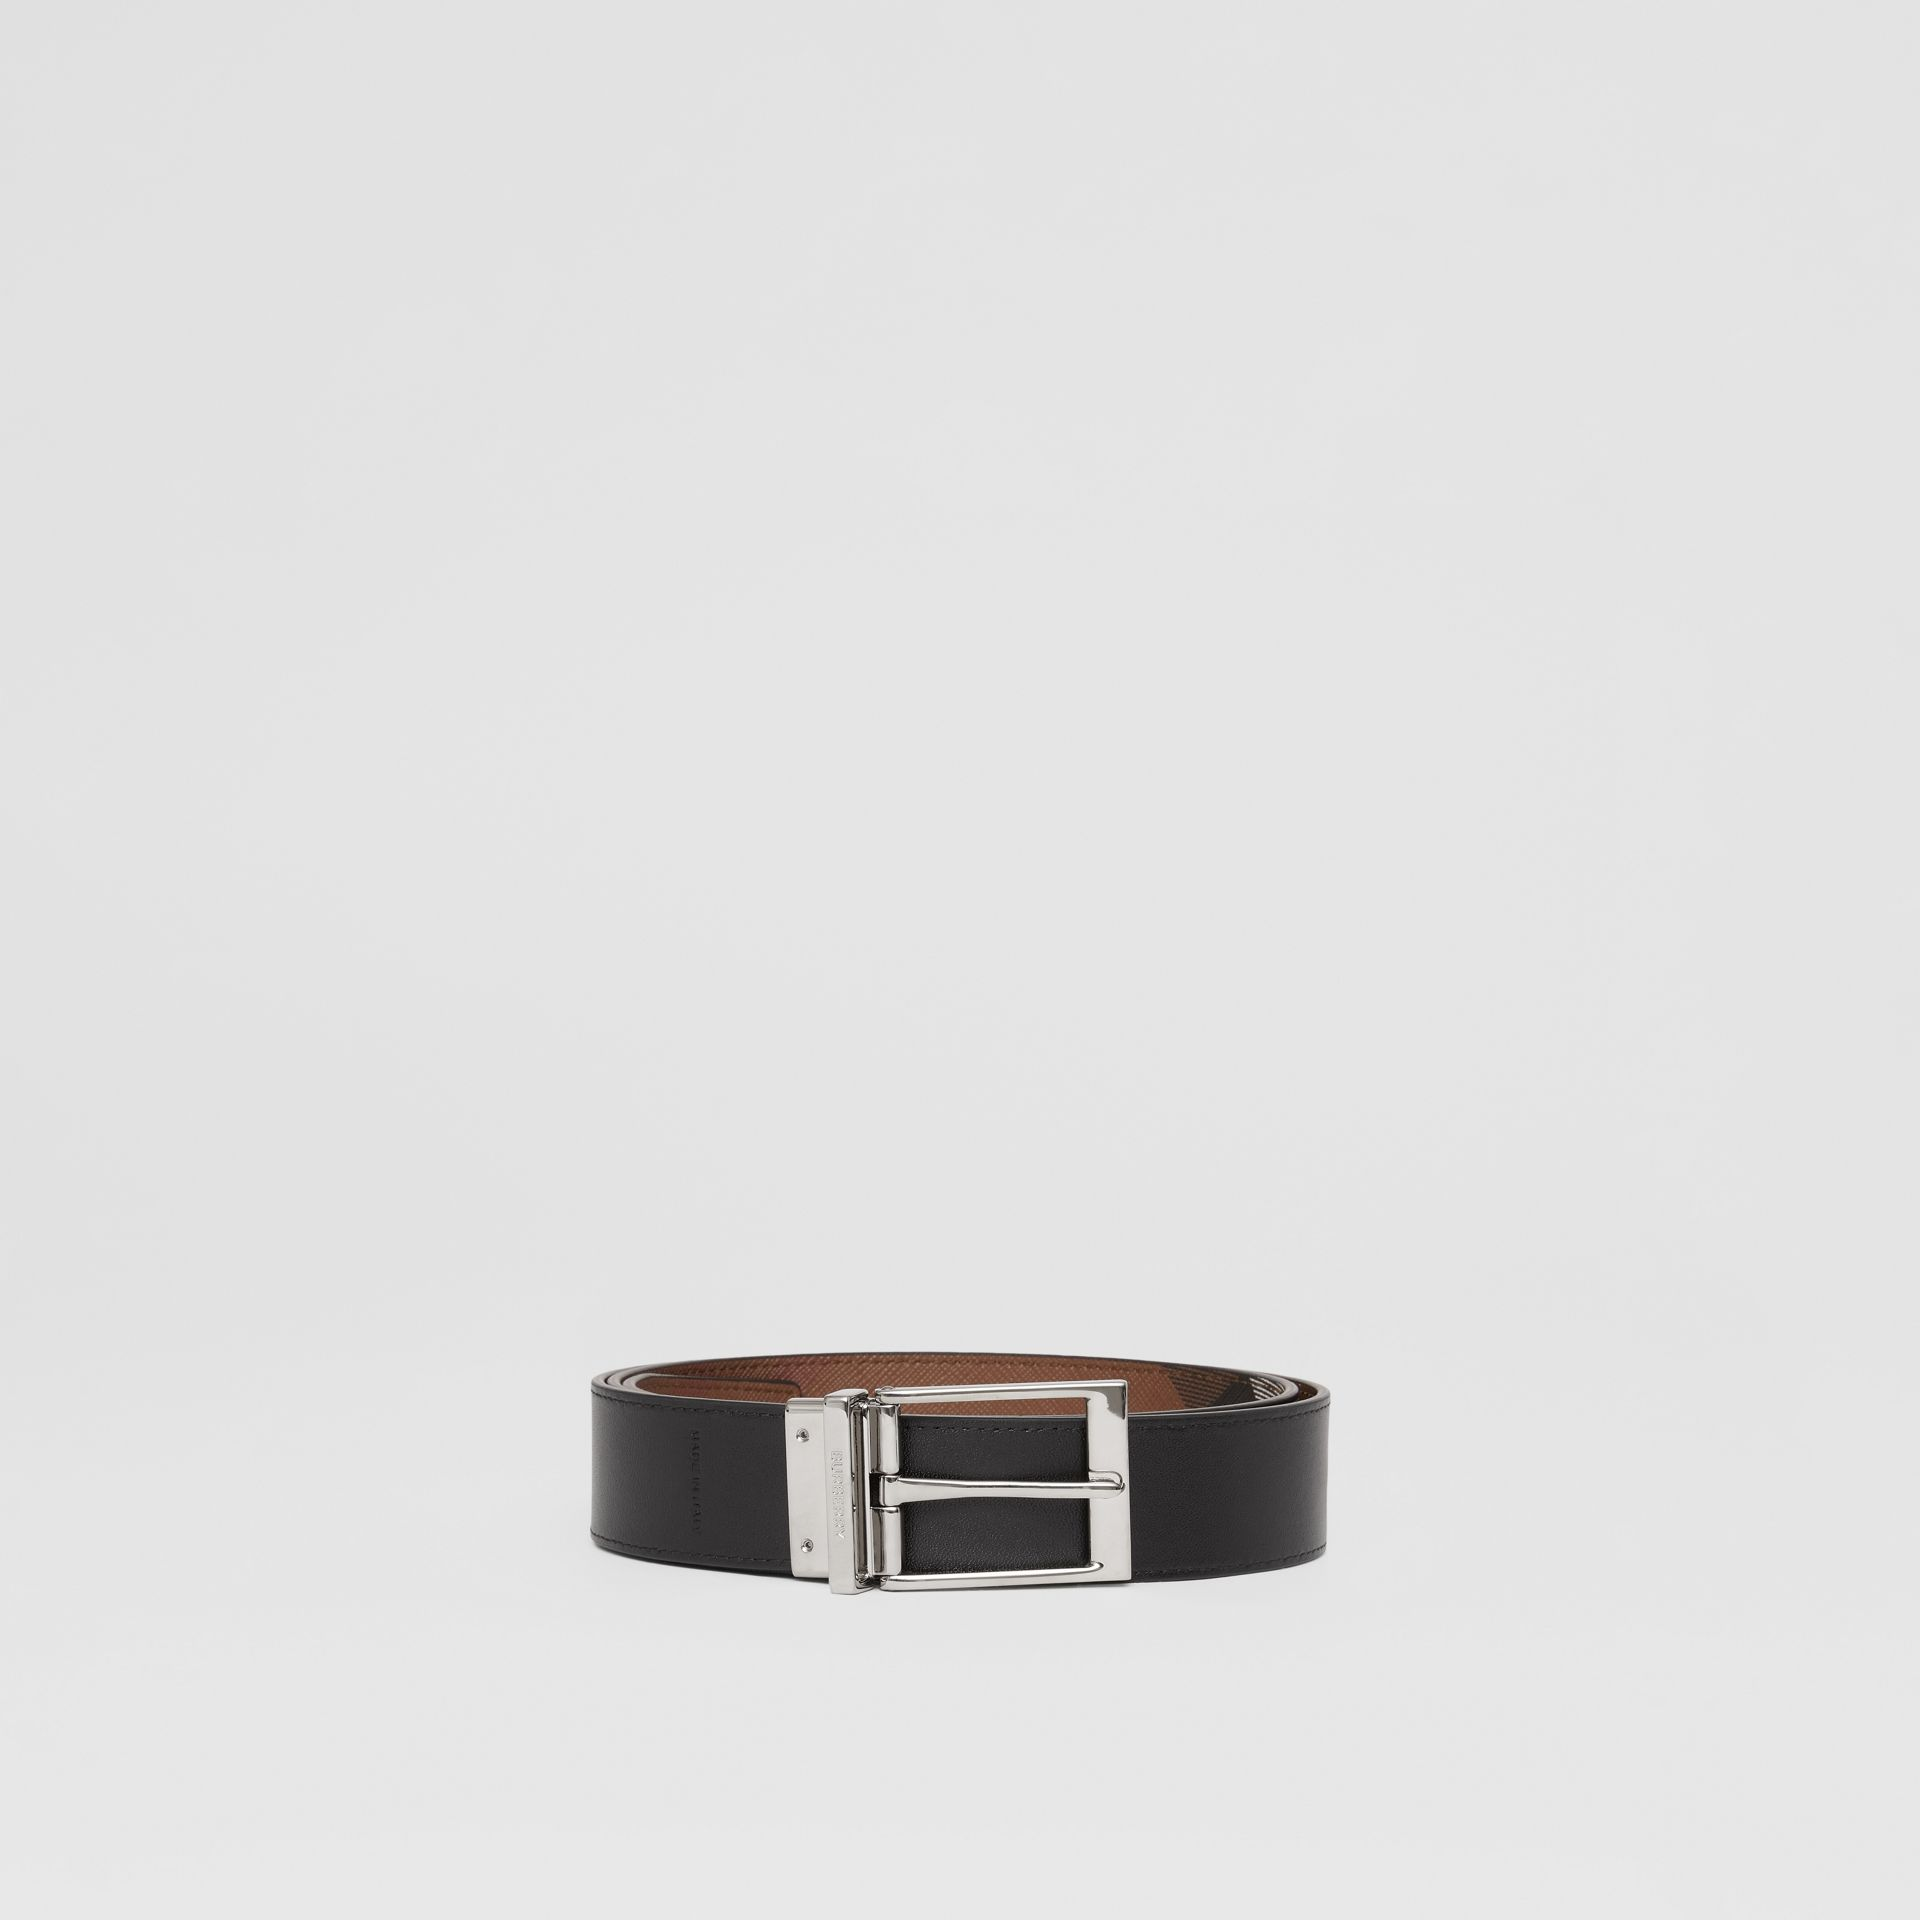 Reversible Check E-canvas and Leather Belt in Dark Birch Brown/black - Men | Burberry - gallery image 6